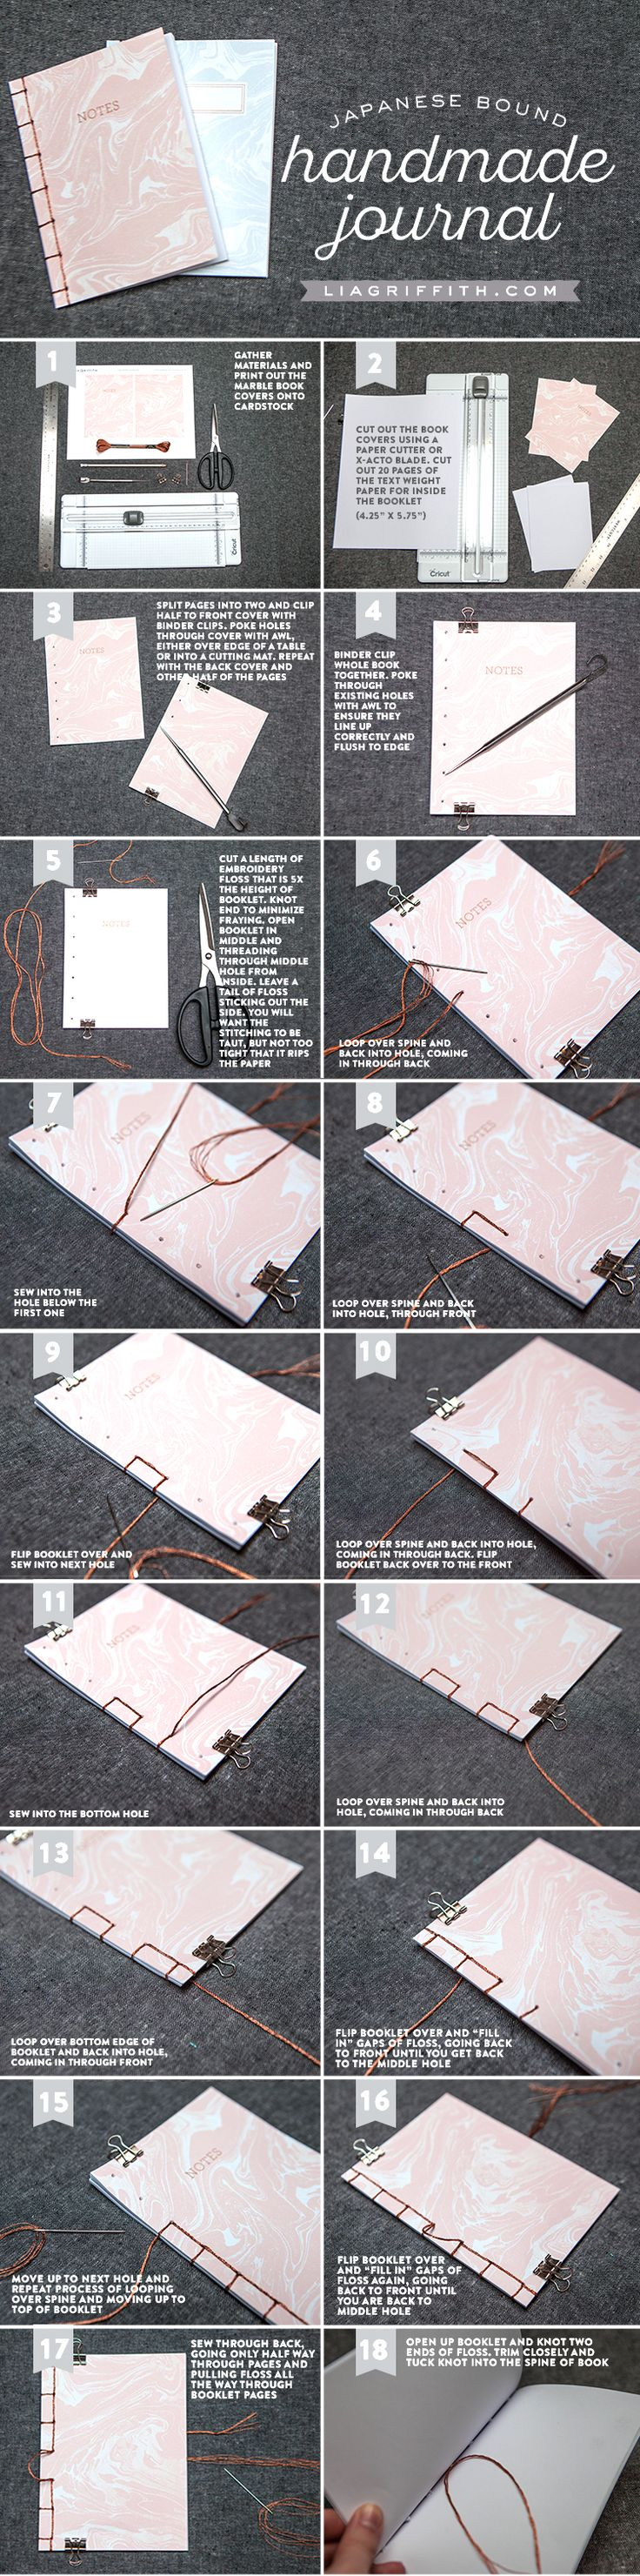 journal_tutorial.jpg 750×3,018 pixels